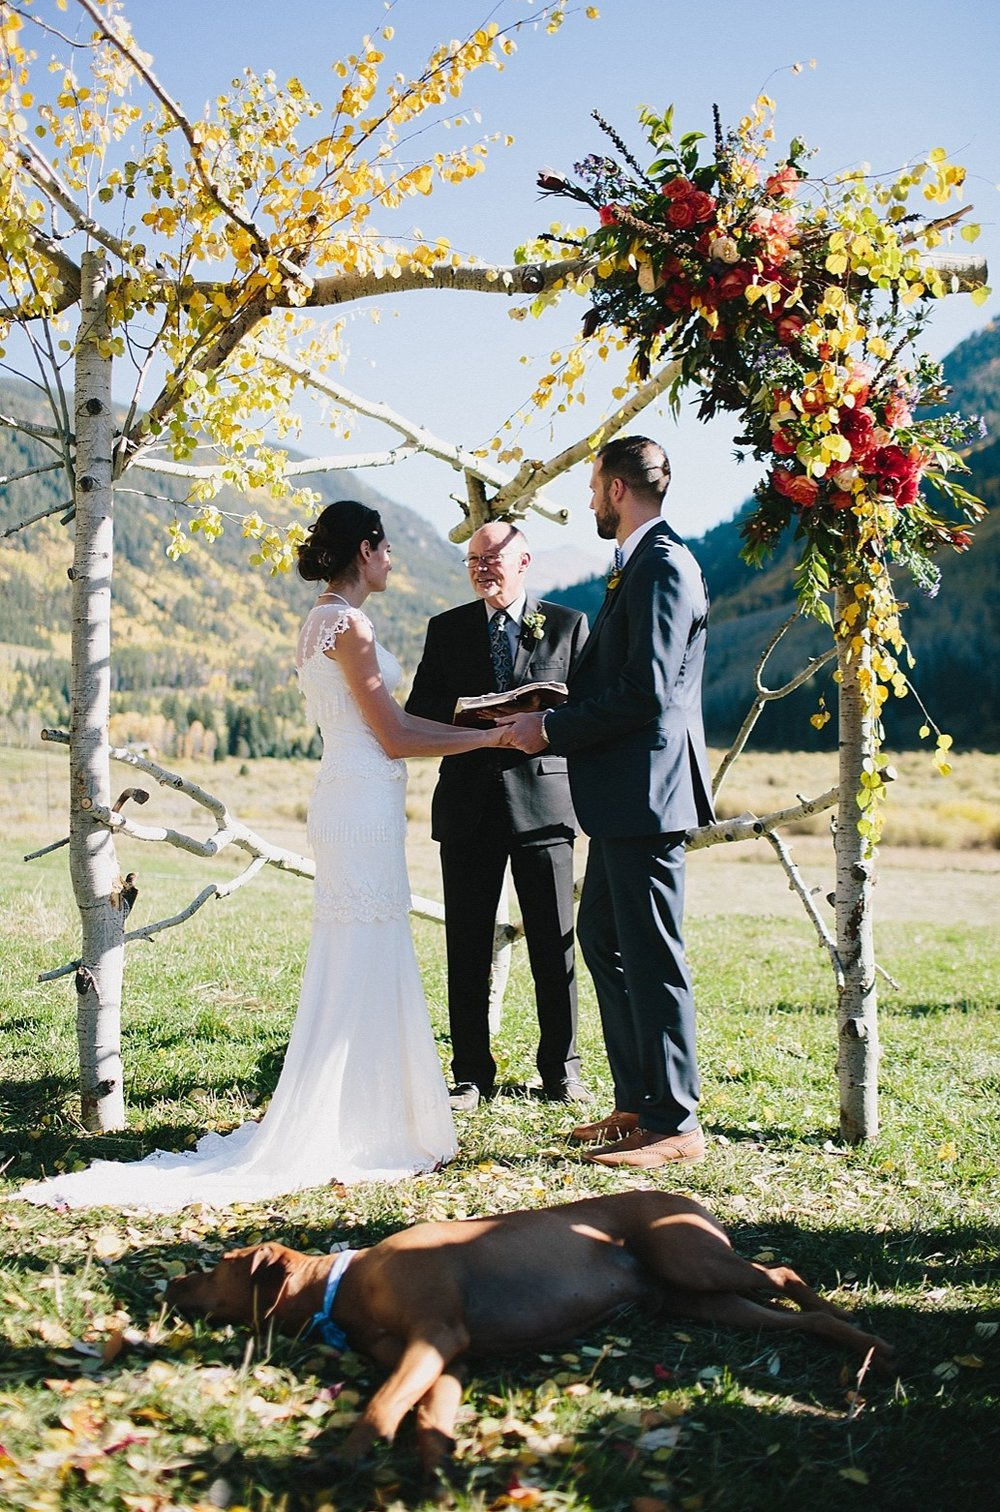 Alison Vagnini Weddings  Edwards, CO